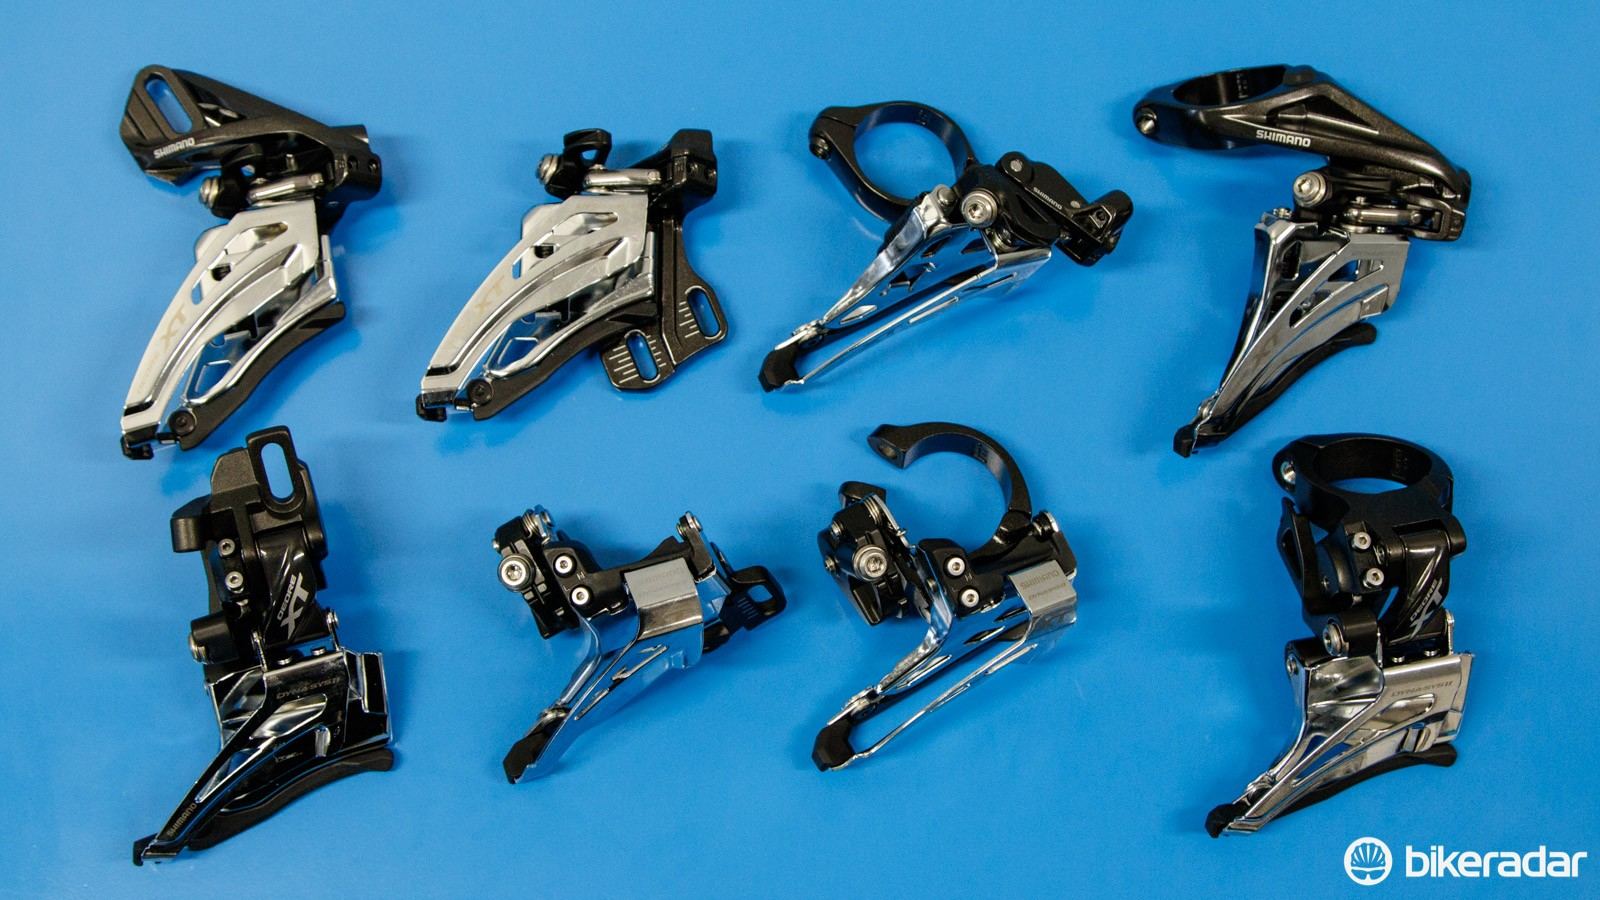 Front derailleur options are staggering. For example, pictured are just the Shimano XT M8000 2x11 front derailleur options